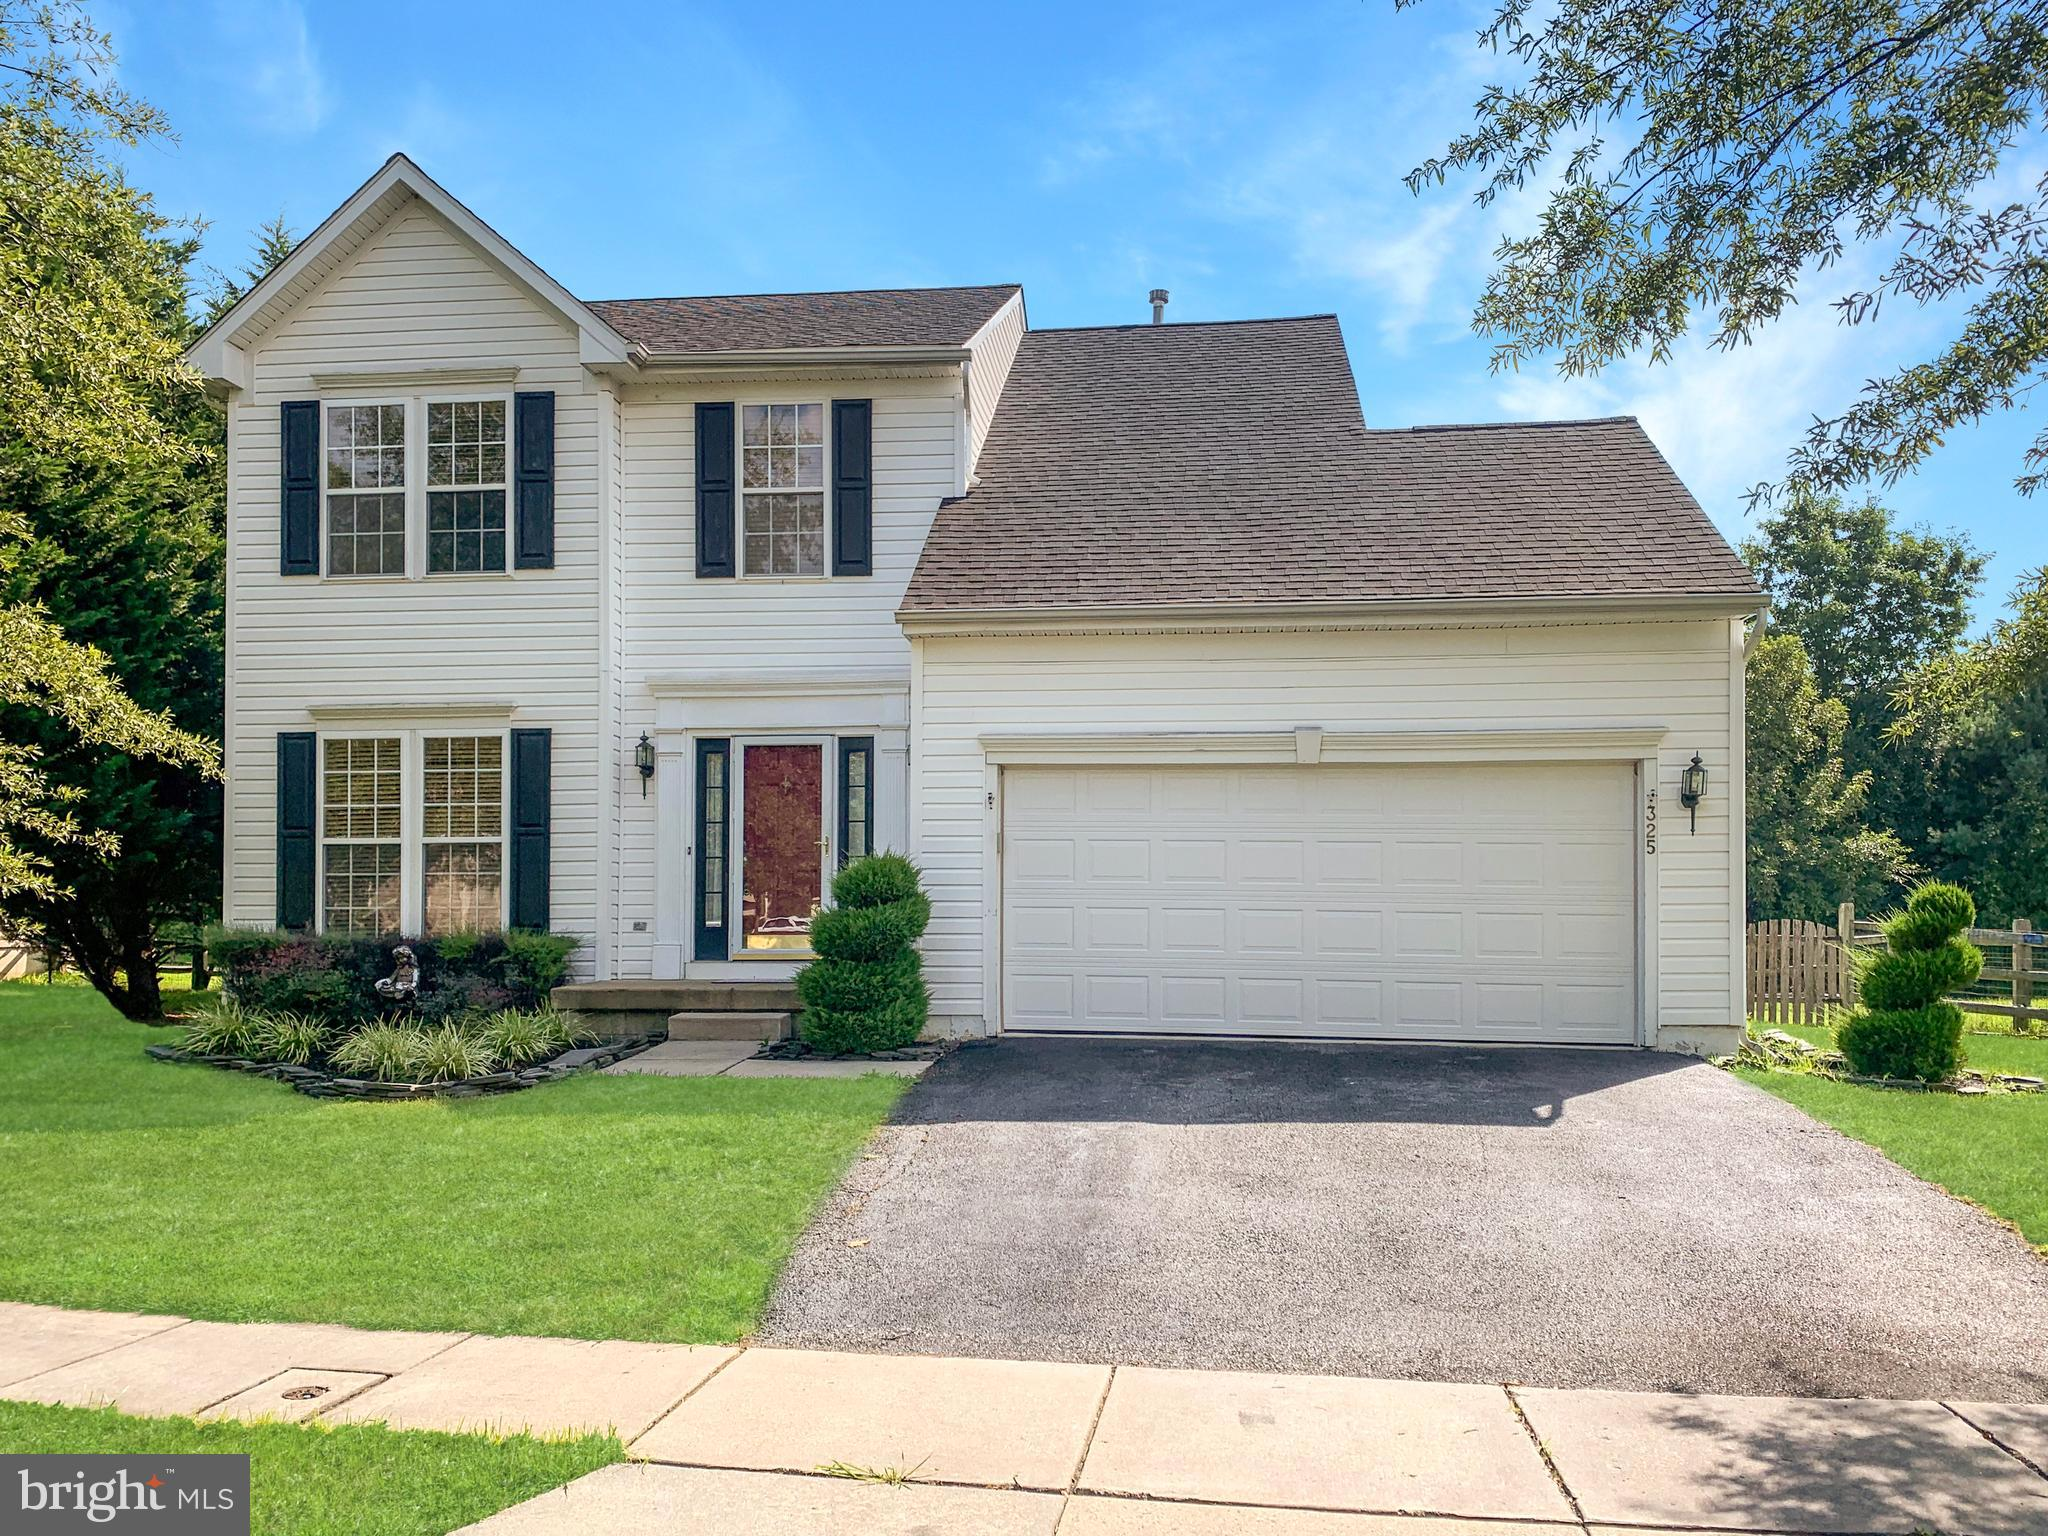 Welcome to the popular community of Chapel Run! Nicely landscaped 3 bedrooms and 2 1/2 bathrooms col